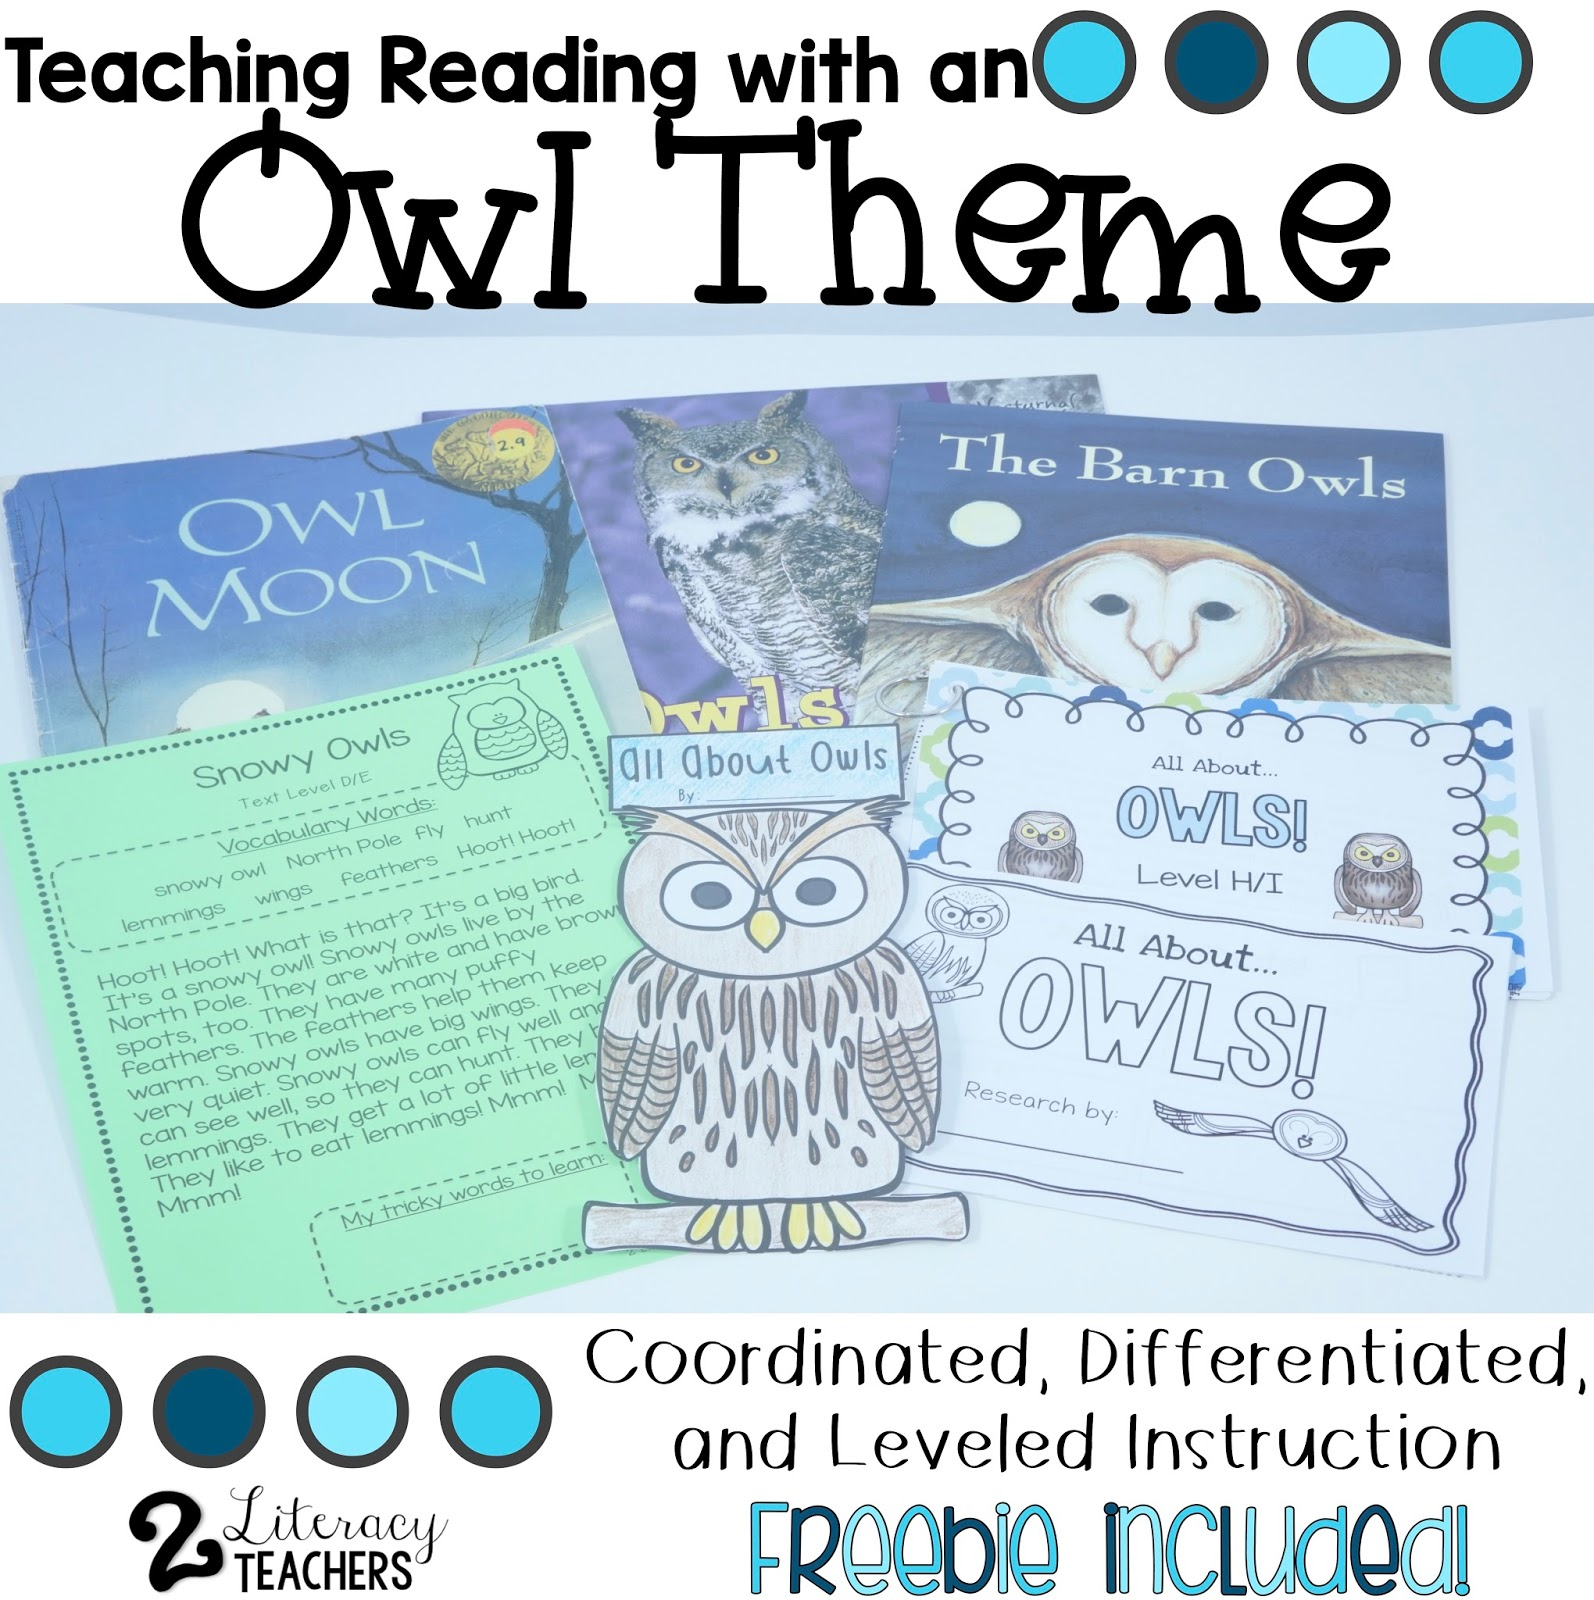 Teaching Reading with a Owl Theme- Differentiated, Leveled Instruction with a FREEBIE!